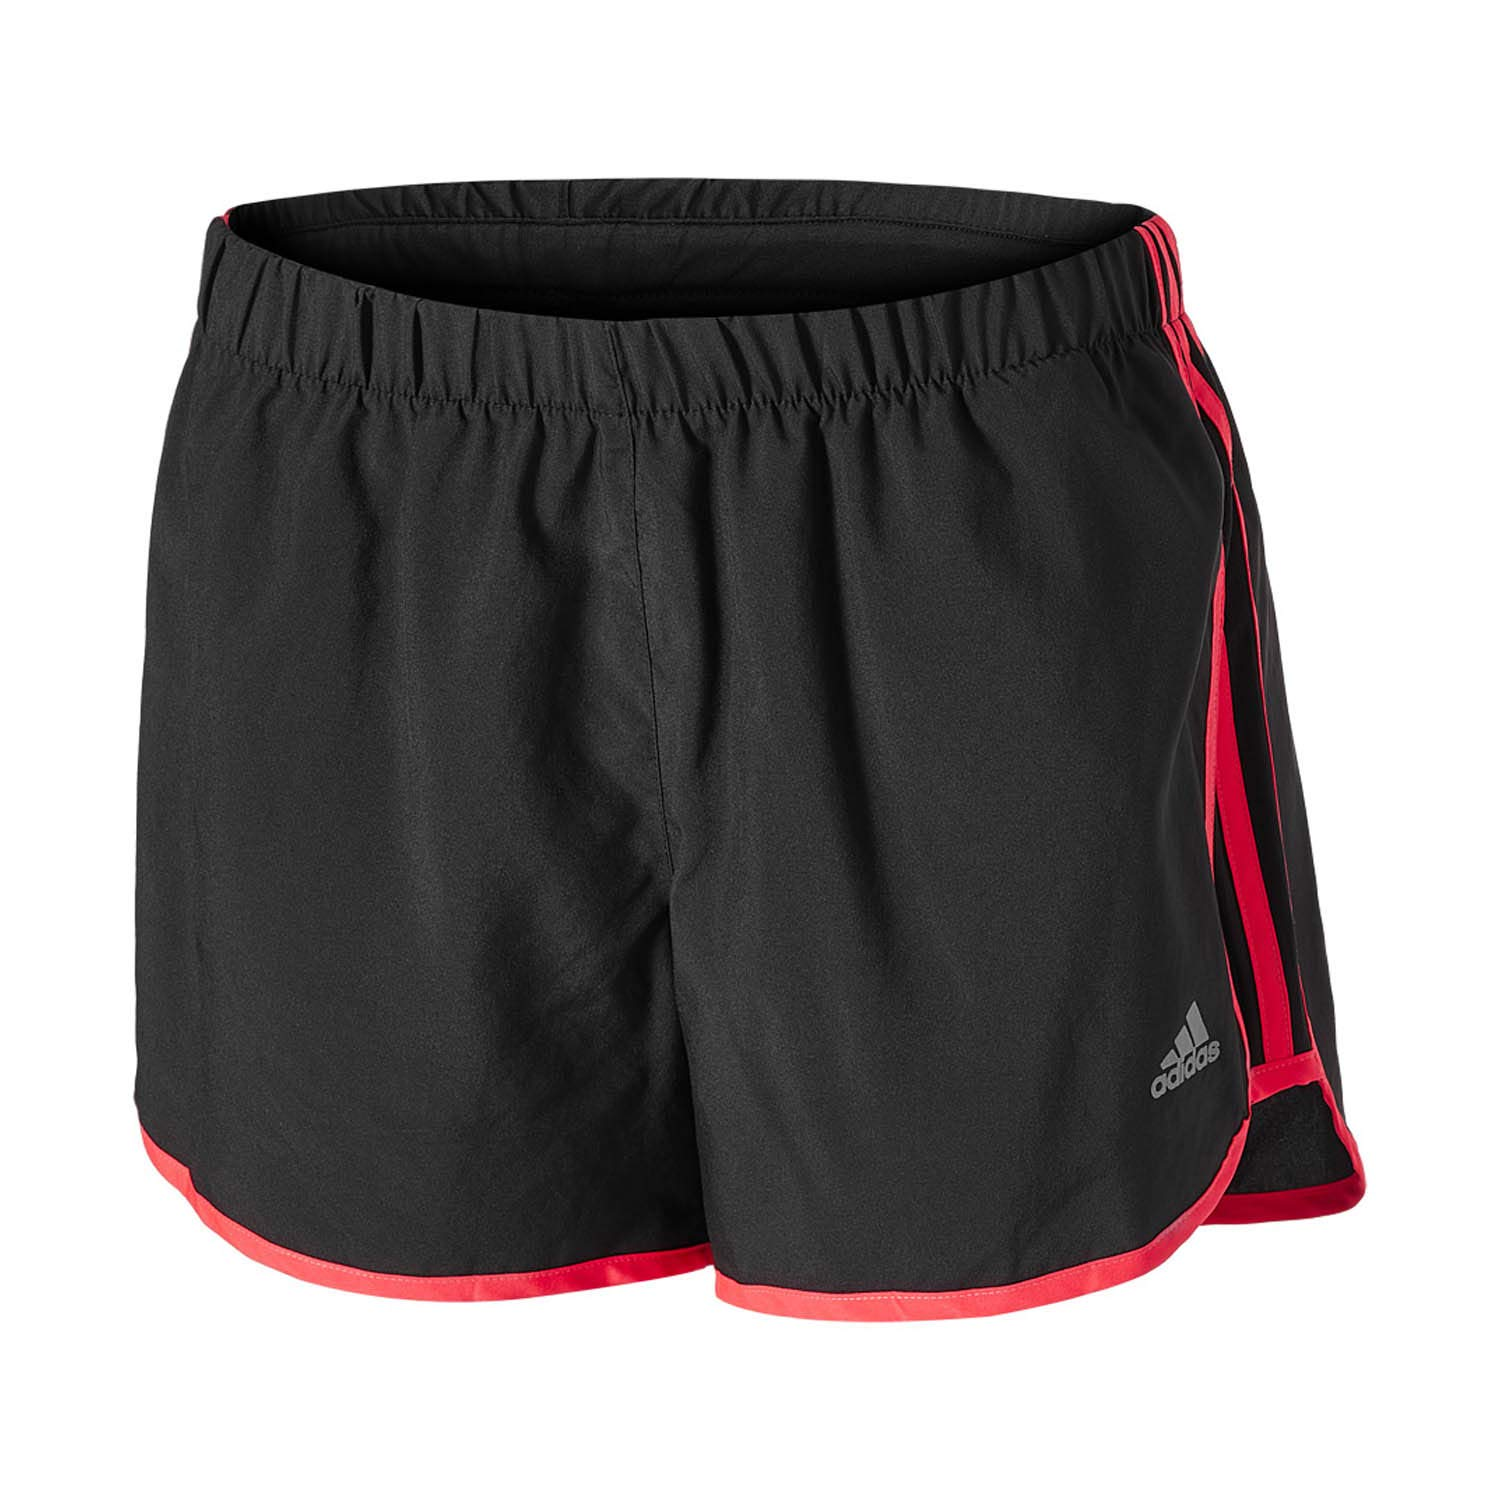 adidas Womens M20 Short Dx1978blk/Shorered S